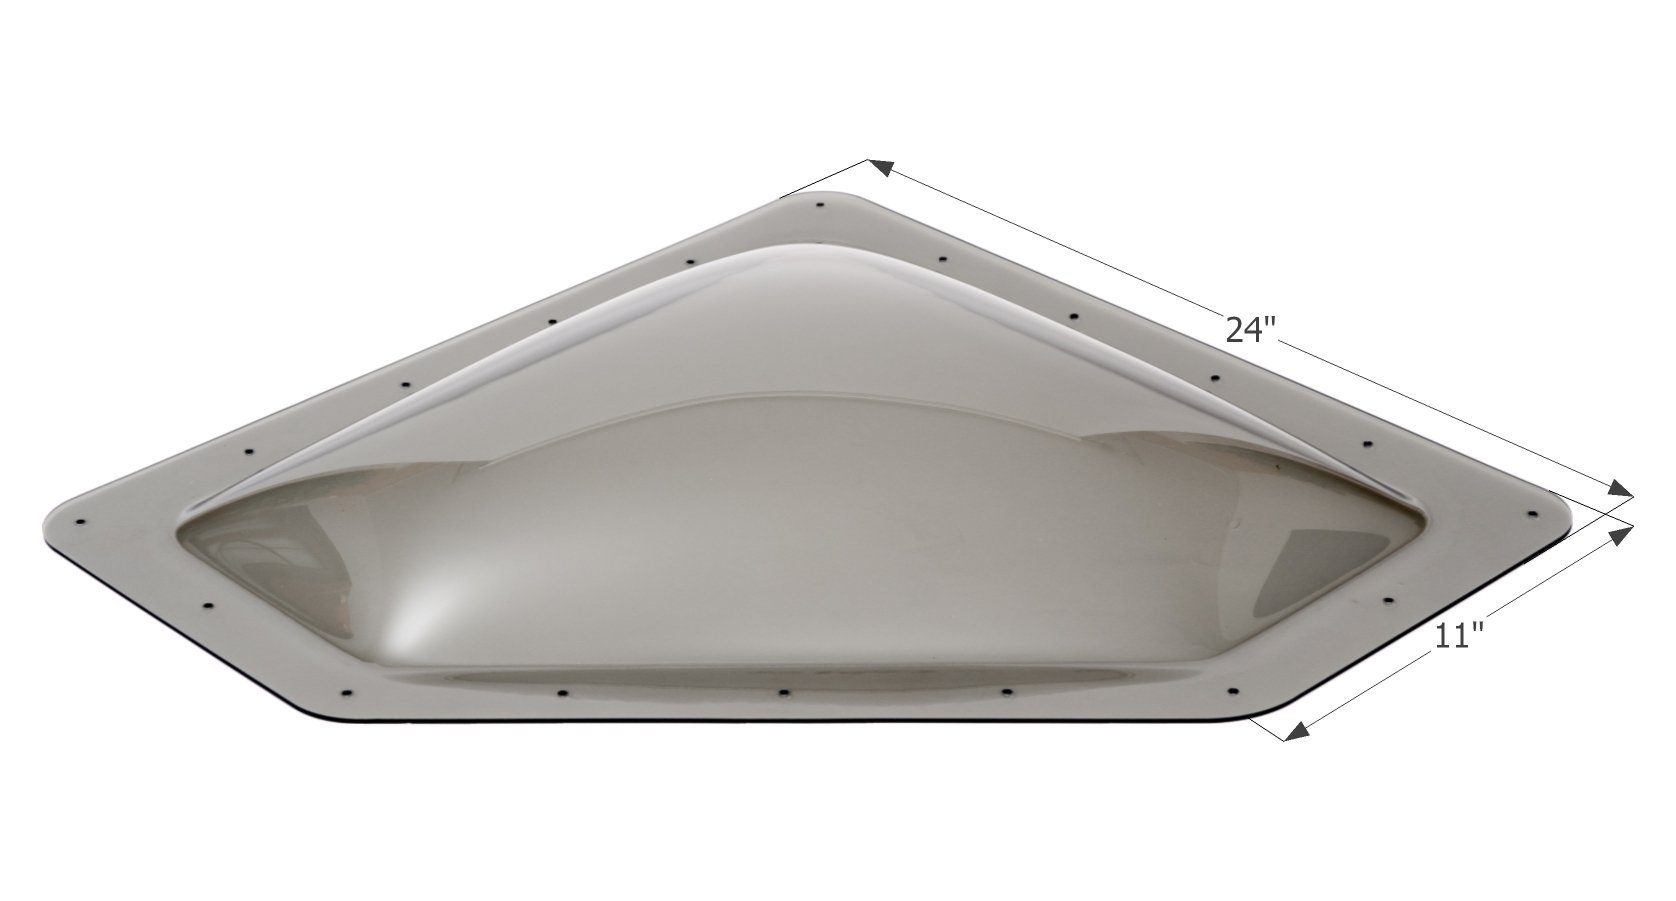 ICON 12114 RV Skylight by ICON